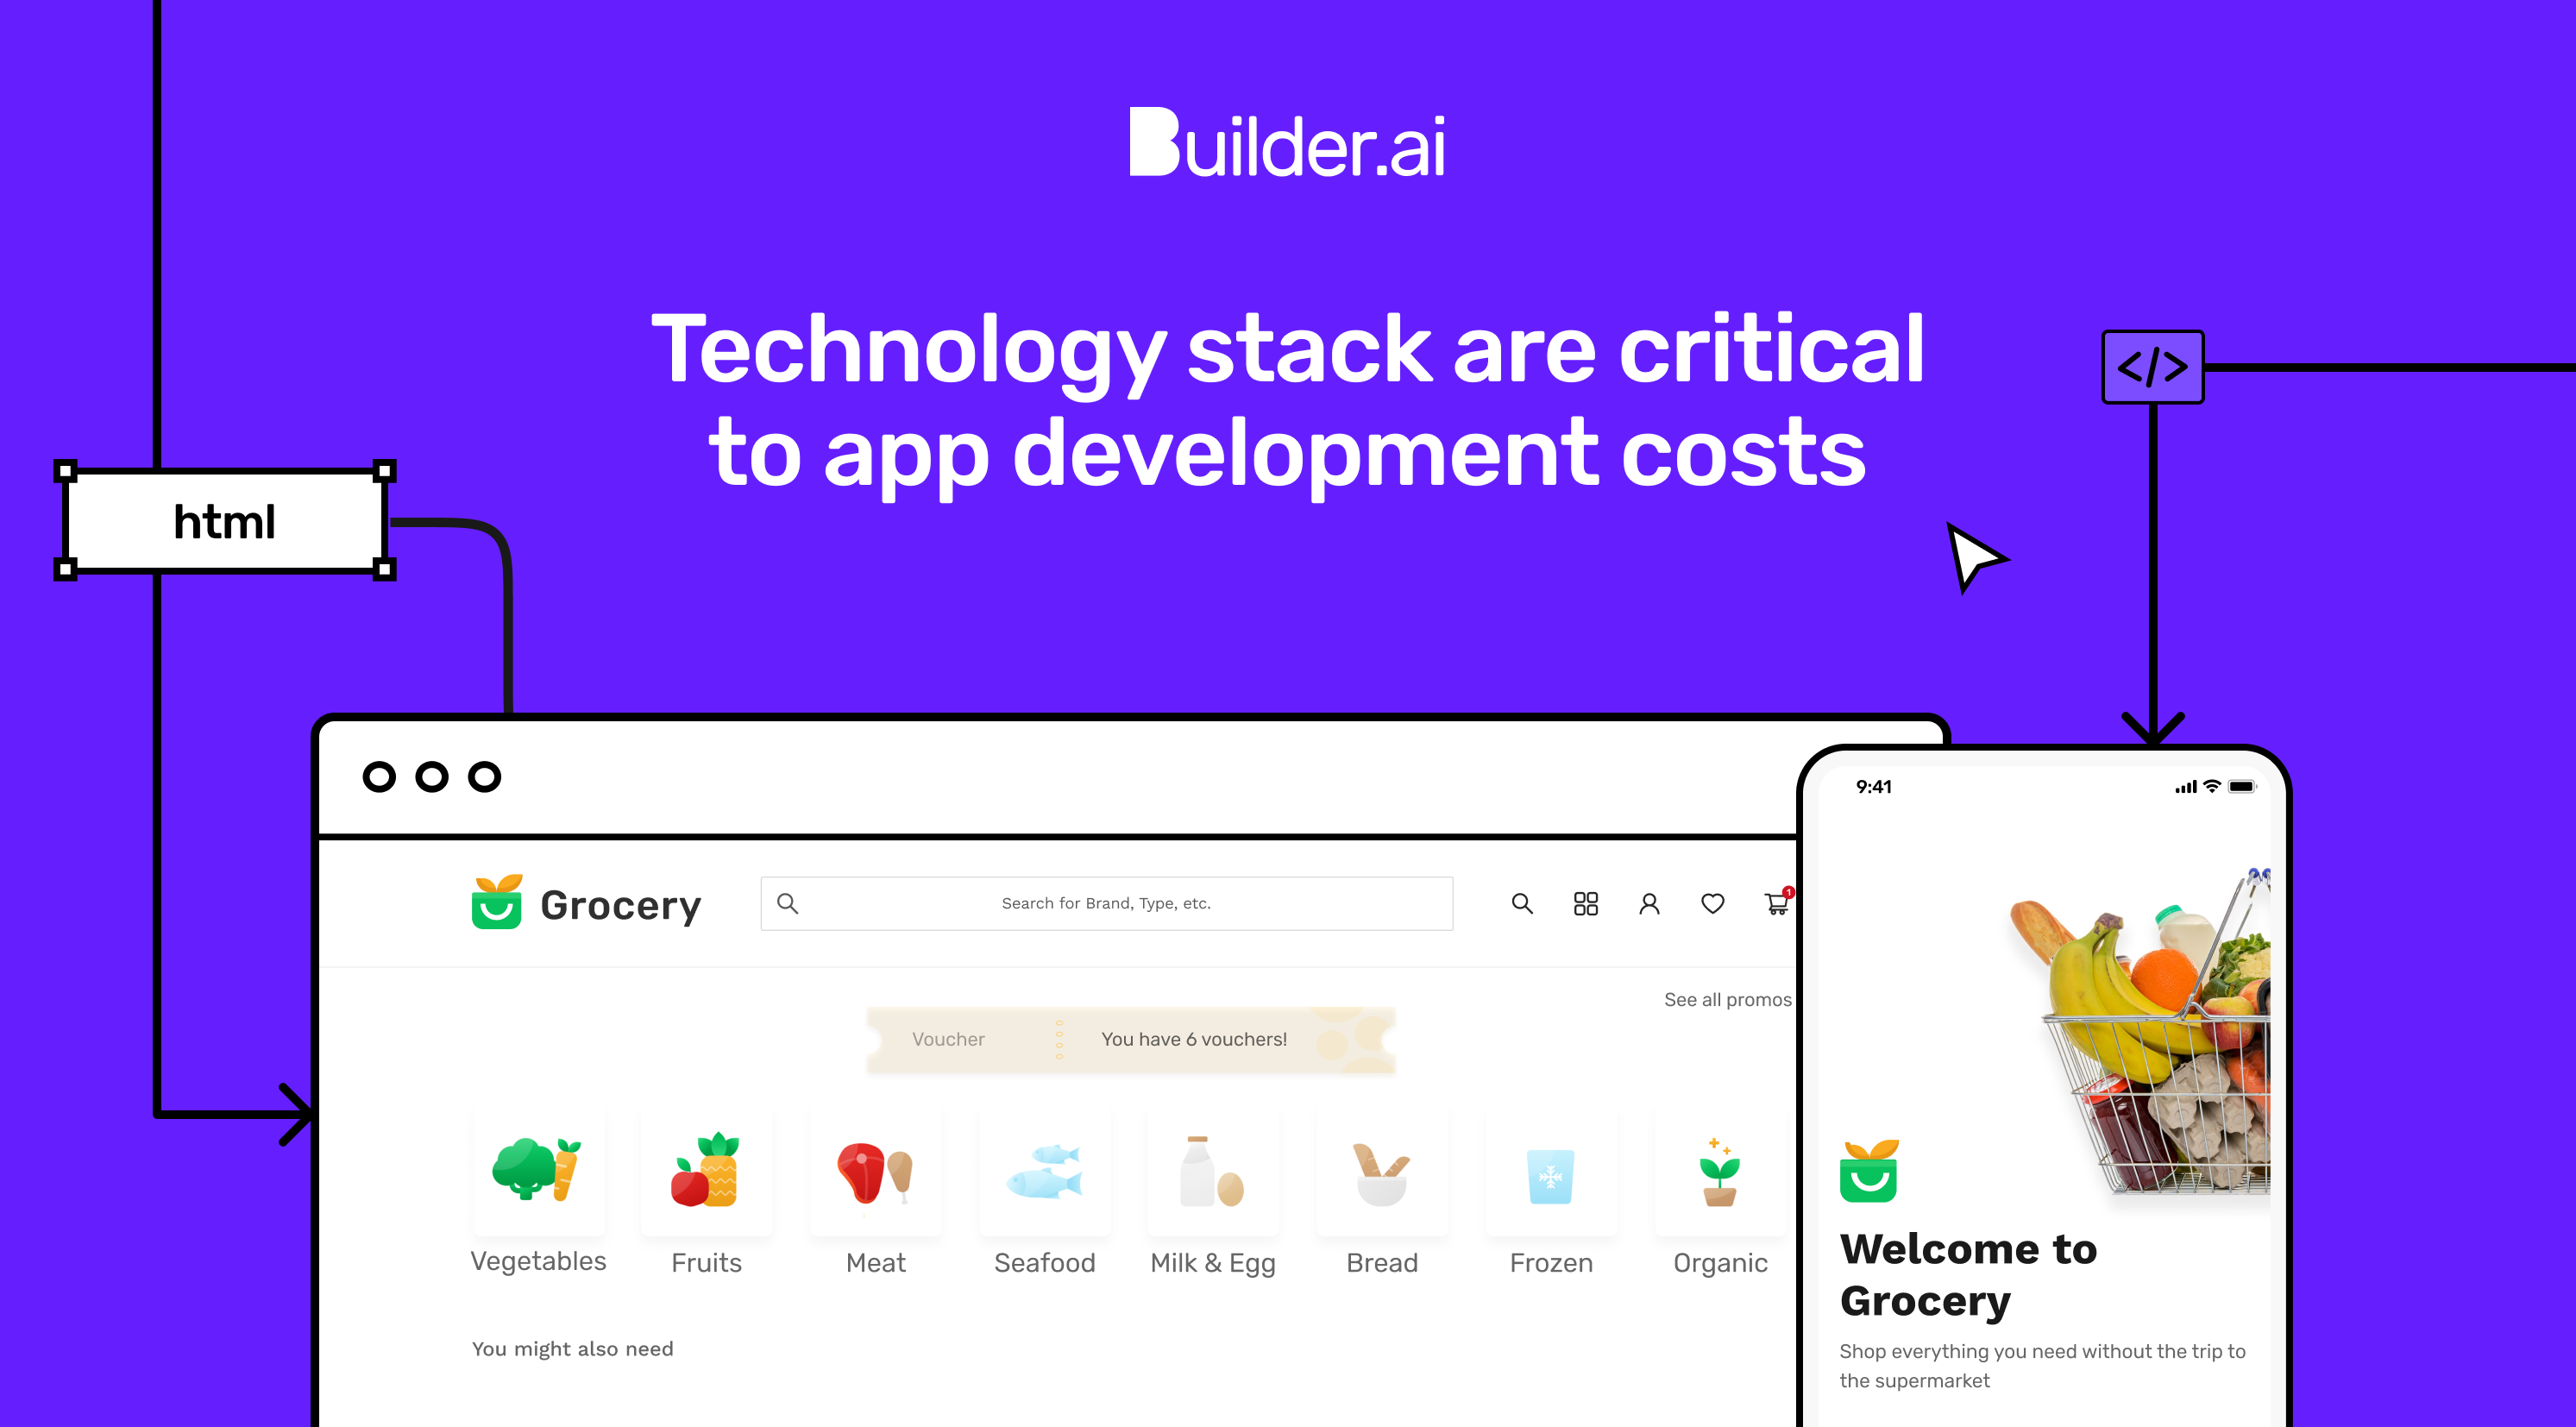 Technology stack are critical to app development